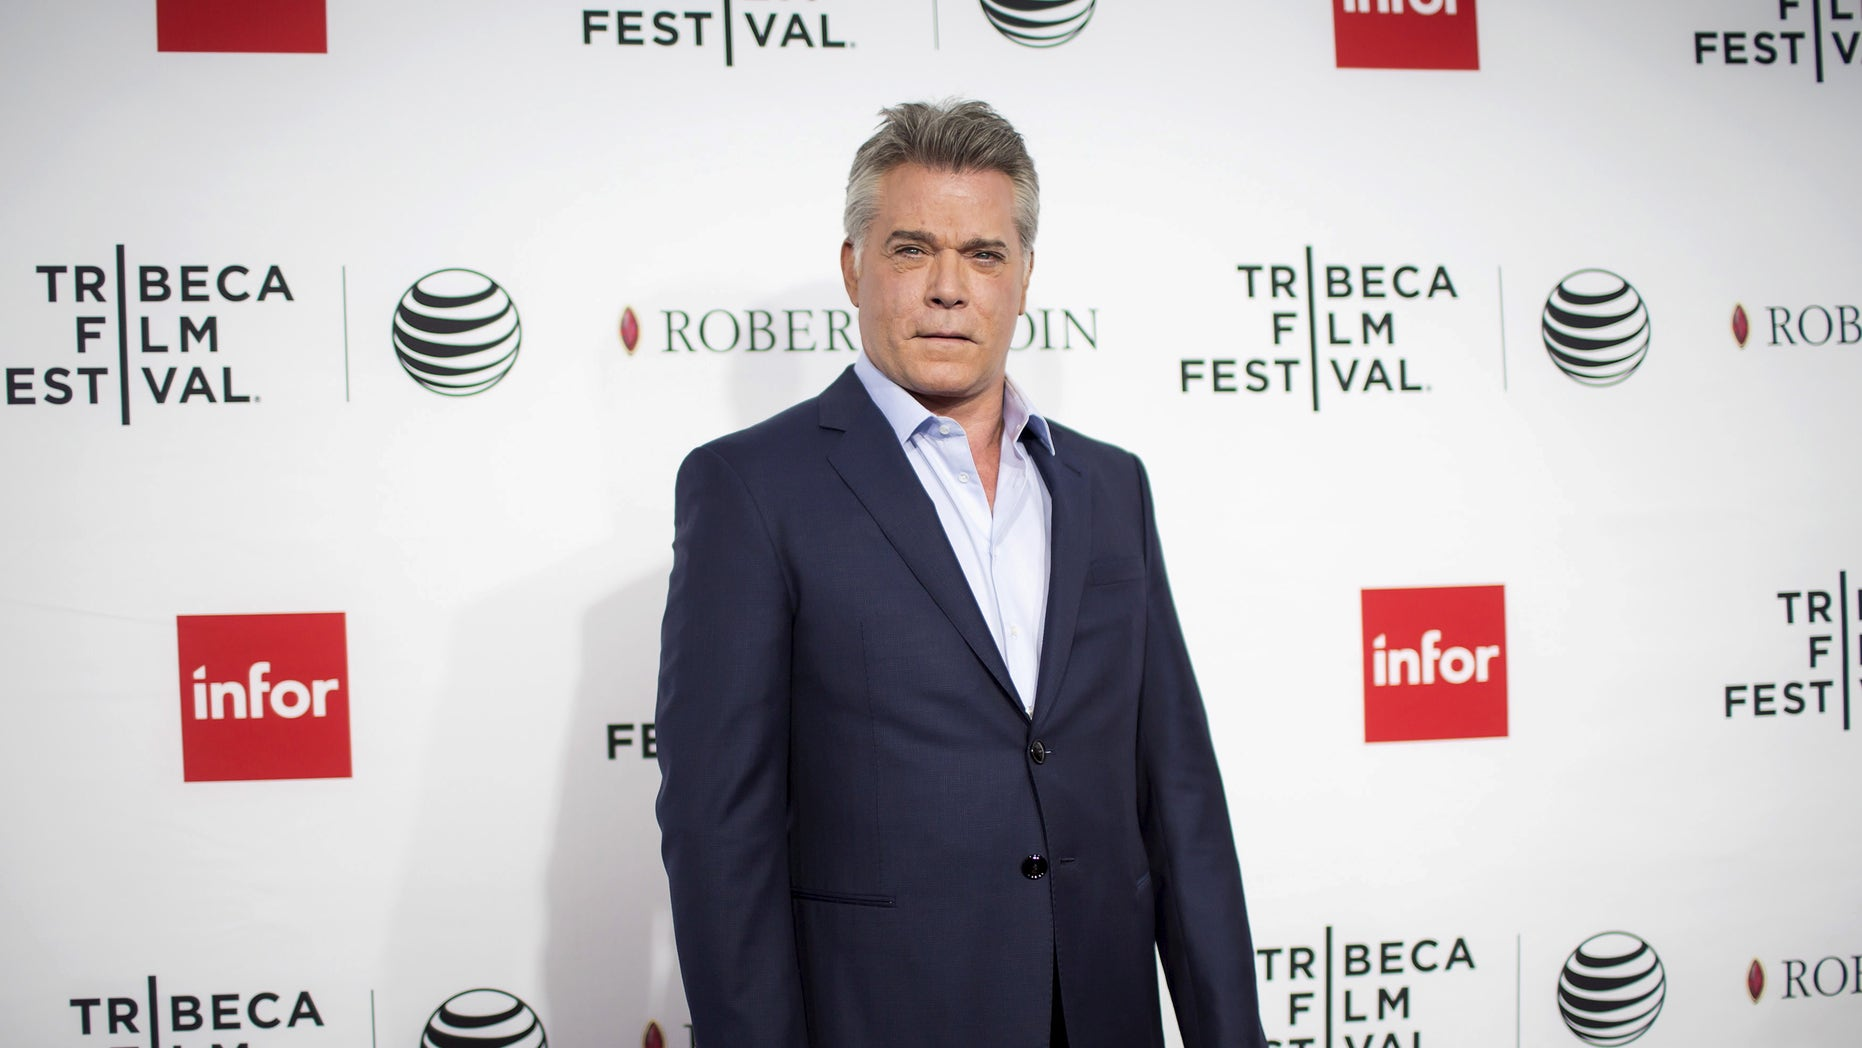 """April 25, 2015. Actor Ray Liotta arrives at a screening of the film """"Good Fellas"""" during the Tribeca Film Festival in New York City."""